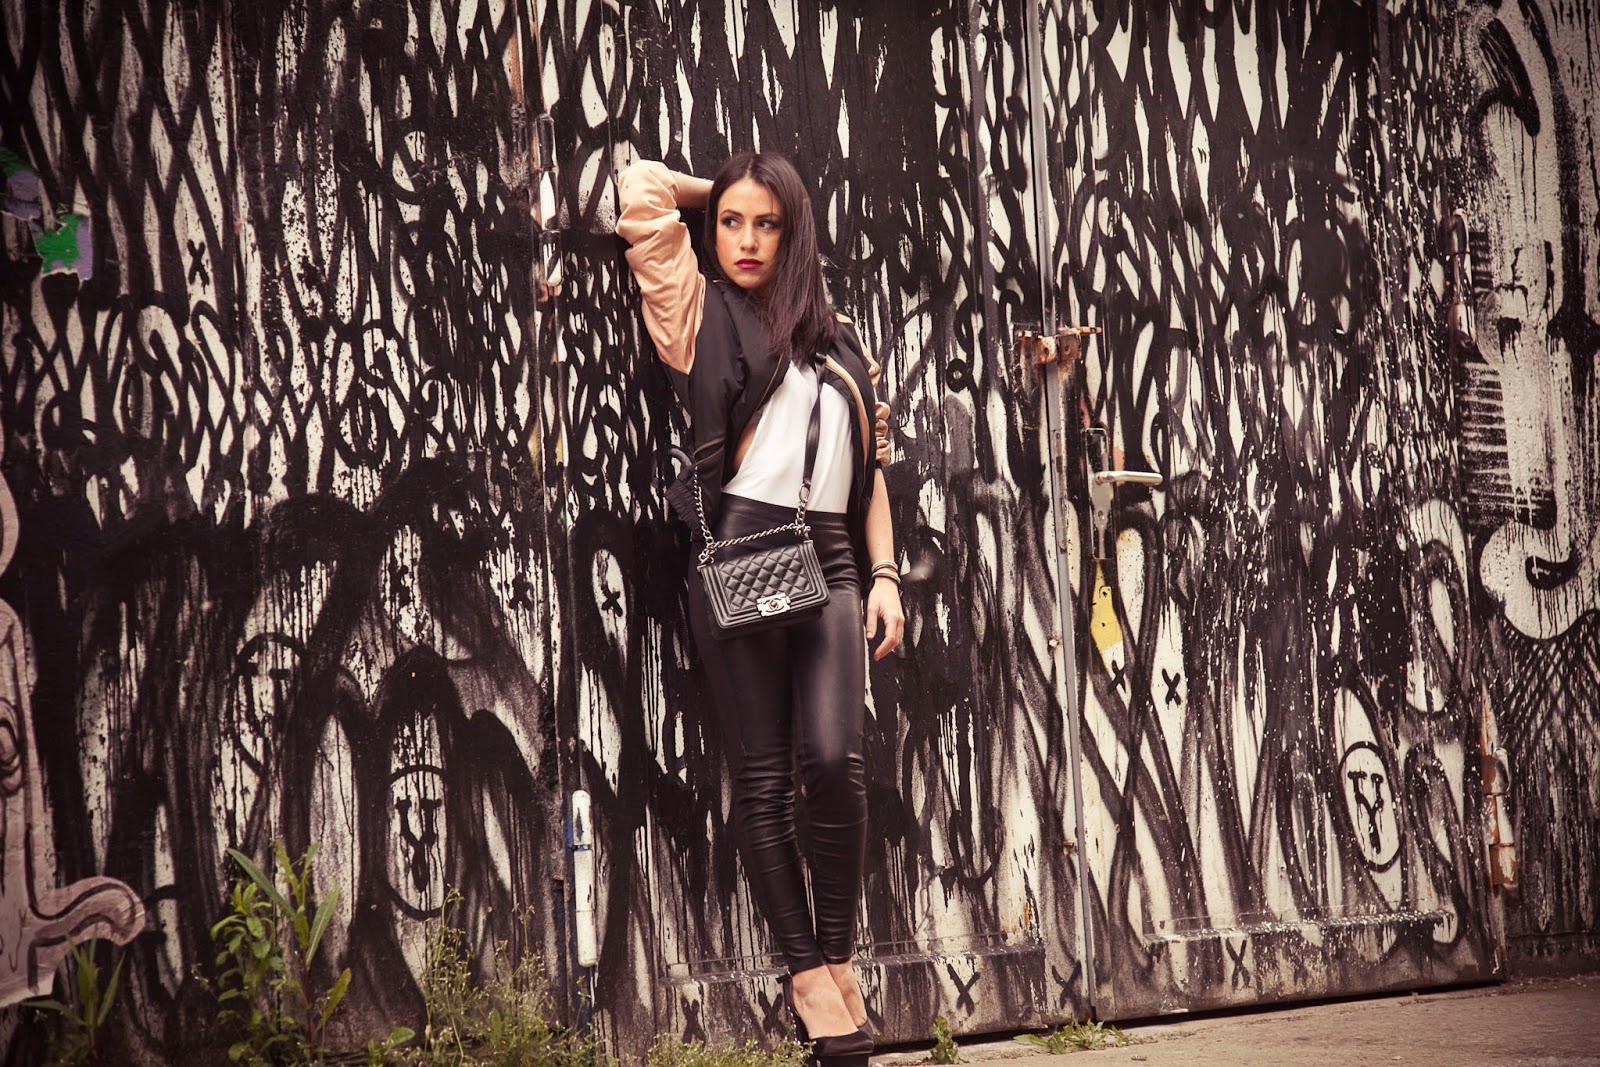 berlingraffiti-outfit-ootd-black-leather-chicetoile